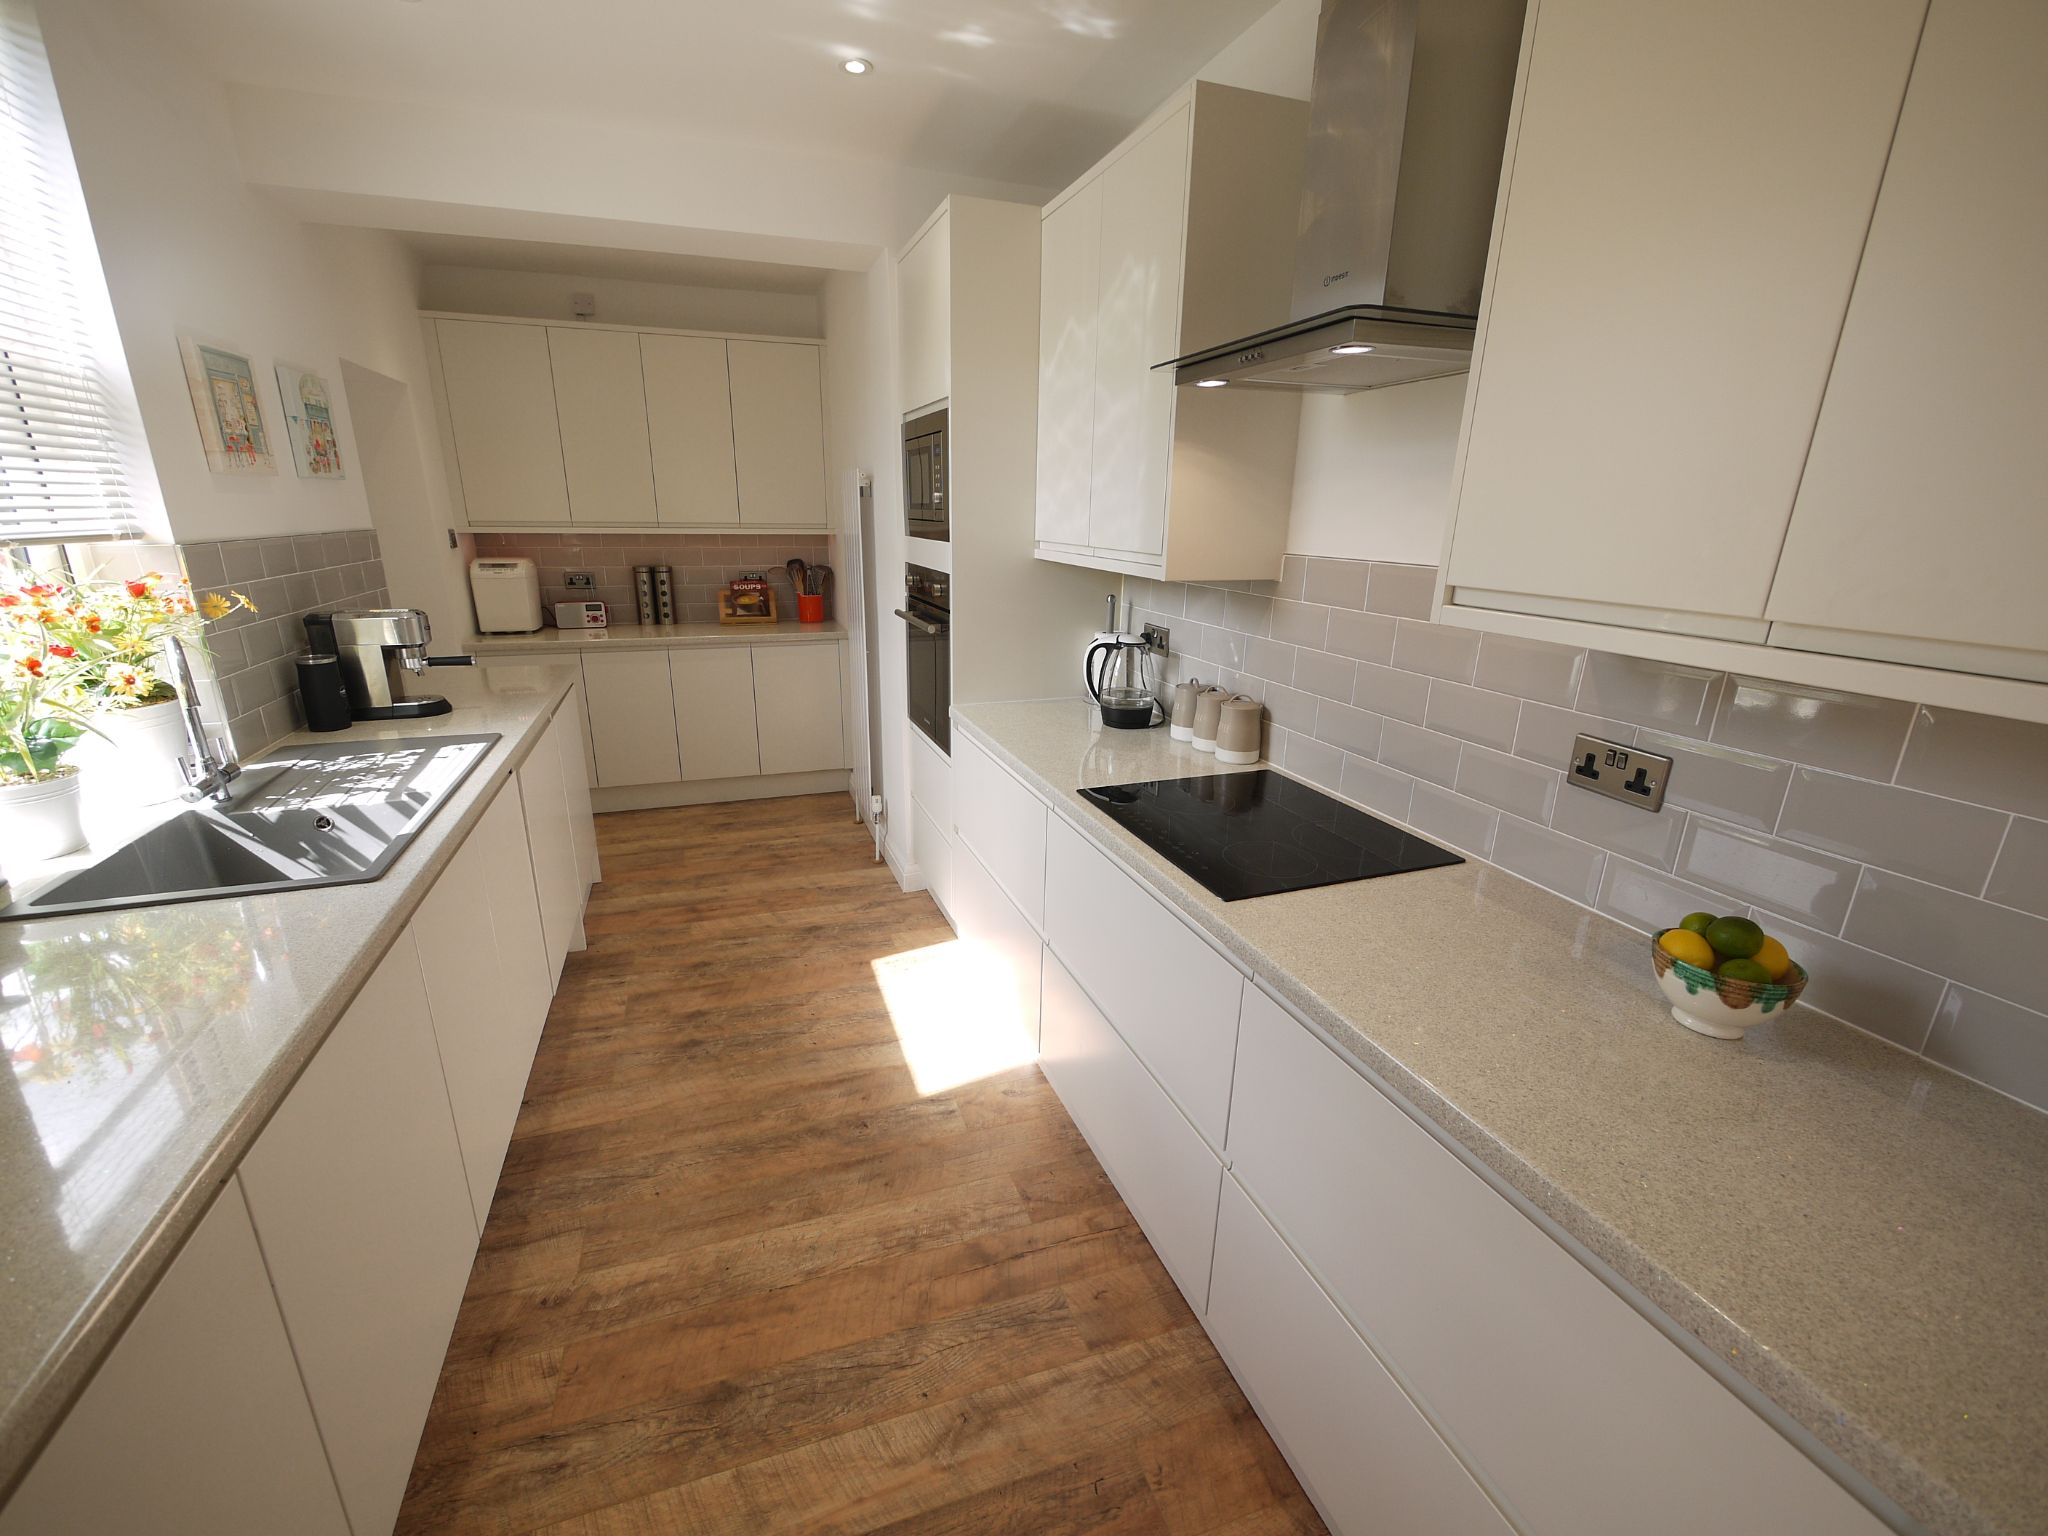 4 bedroom detached house For Sale in Halifax - Kitchen 1.